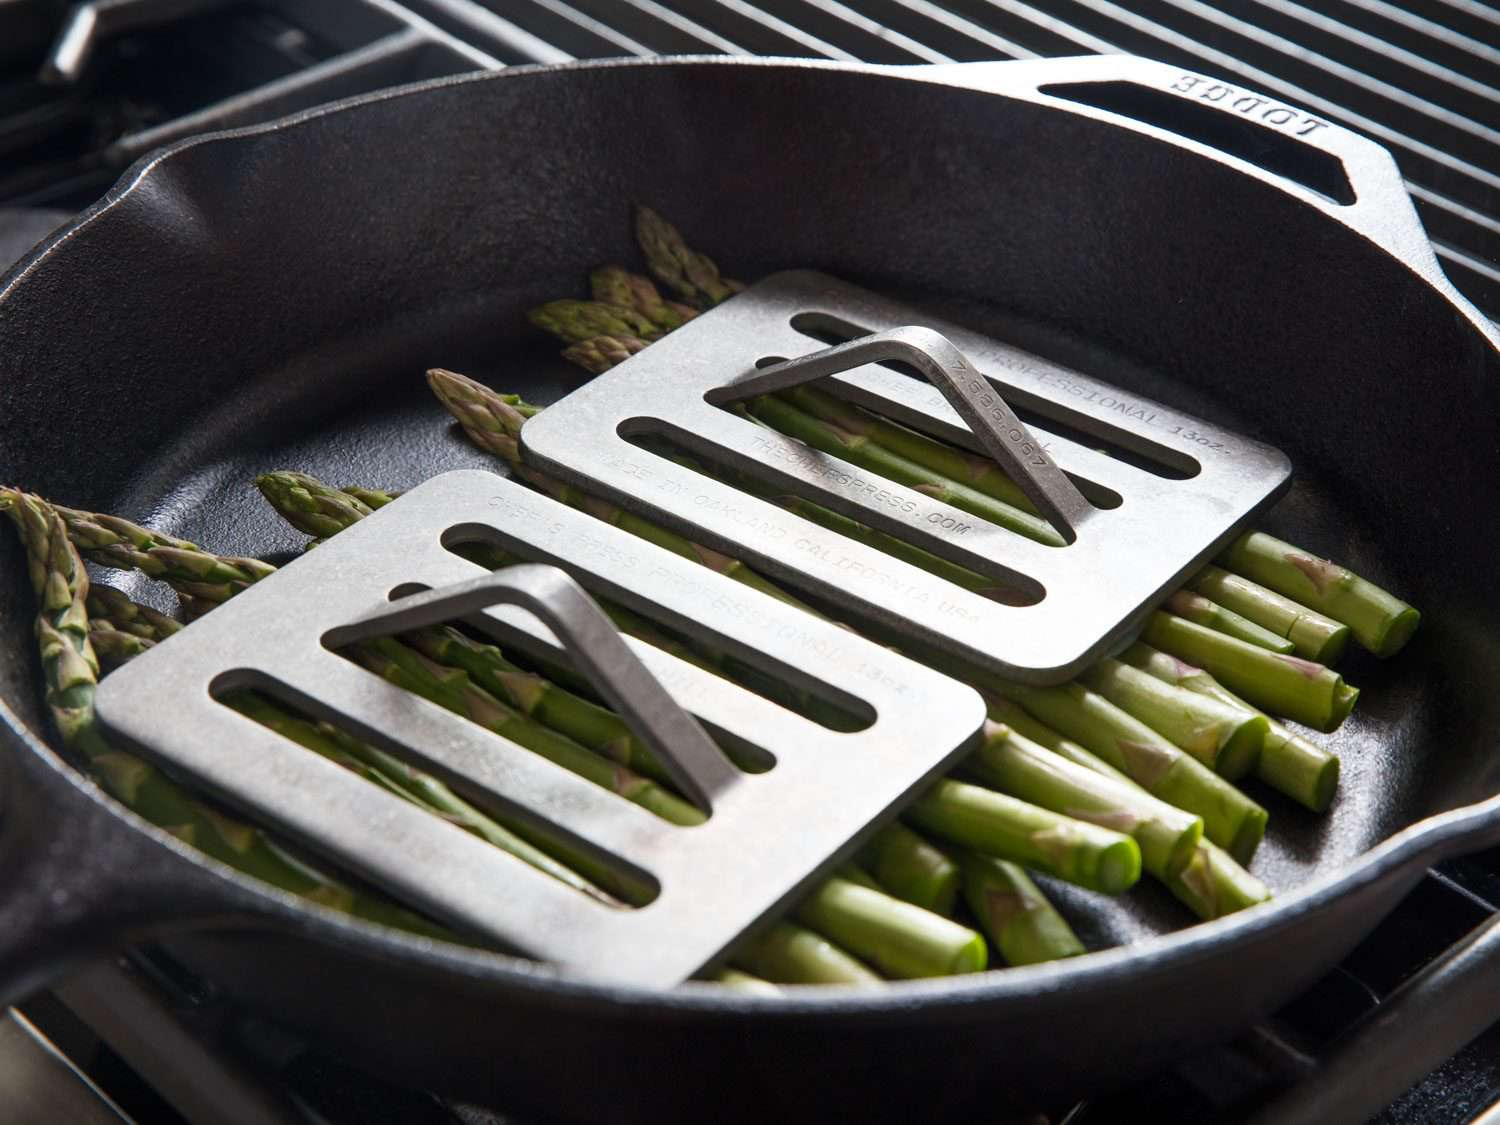 Maximizing contact between asparagus spears and a cast iron skillet with Chef's Press weights.